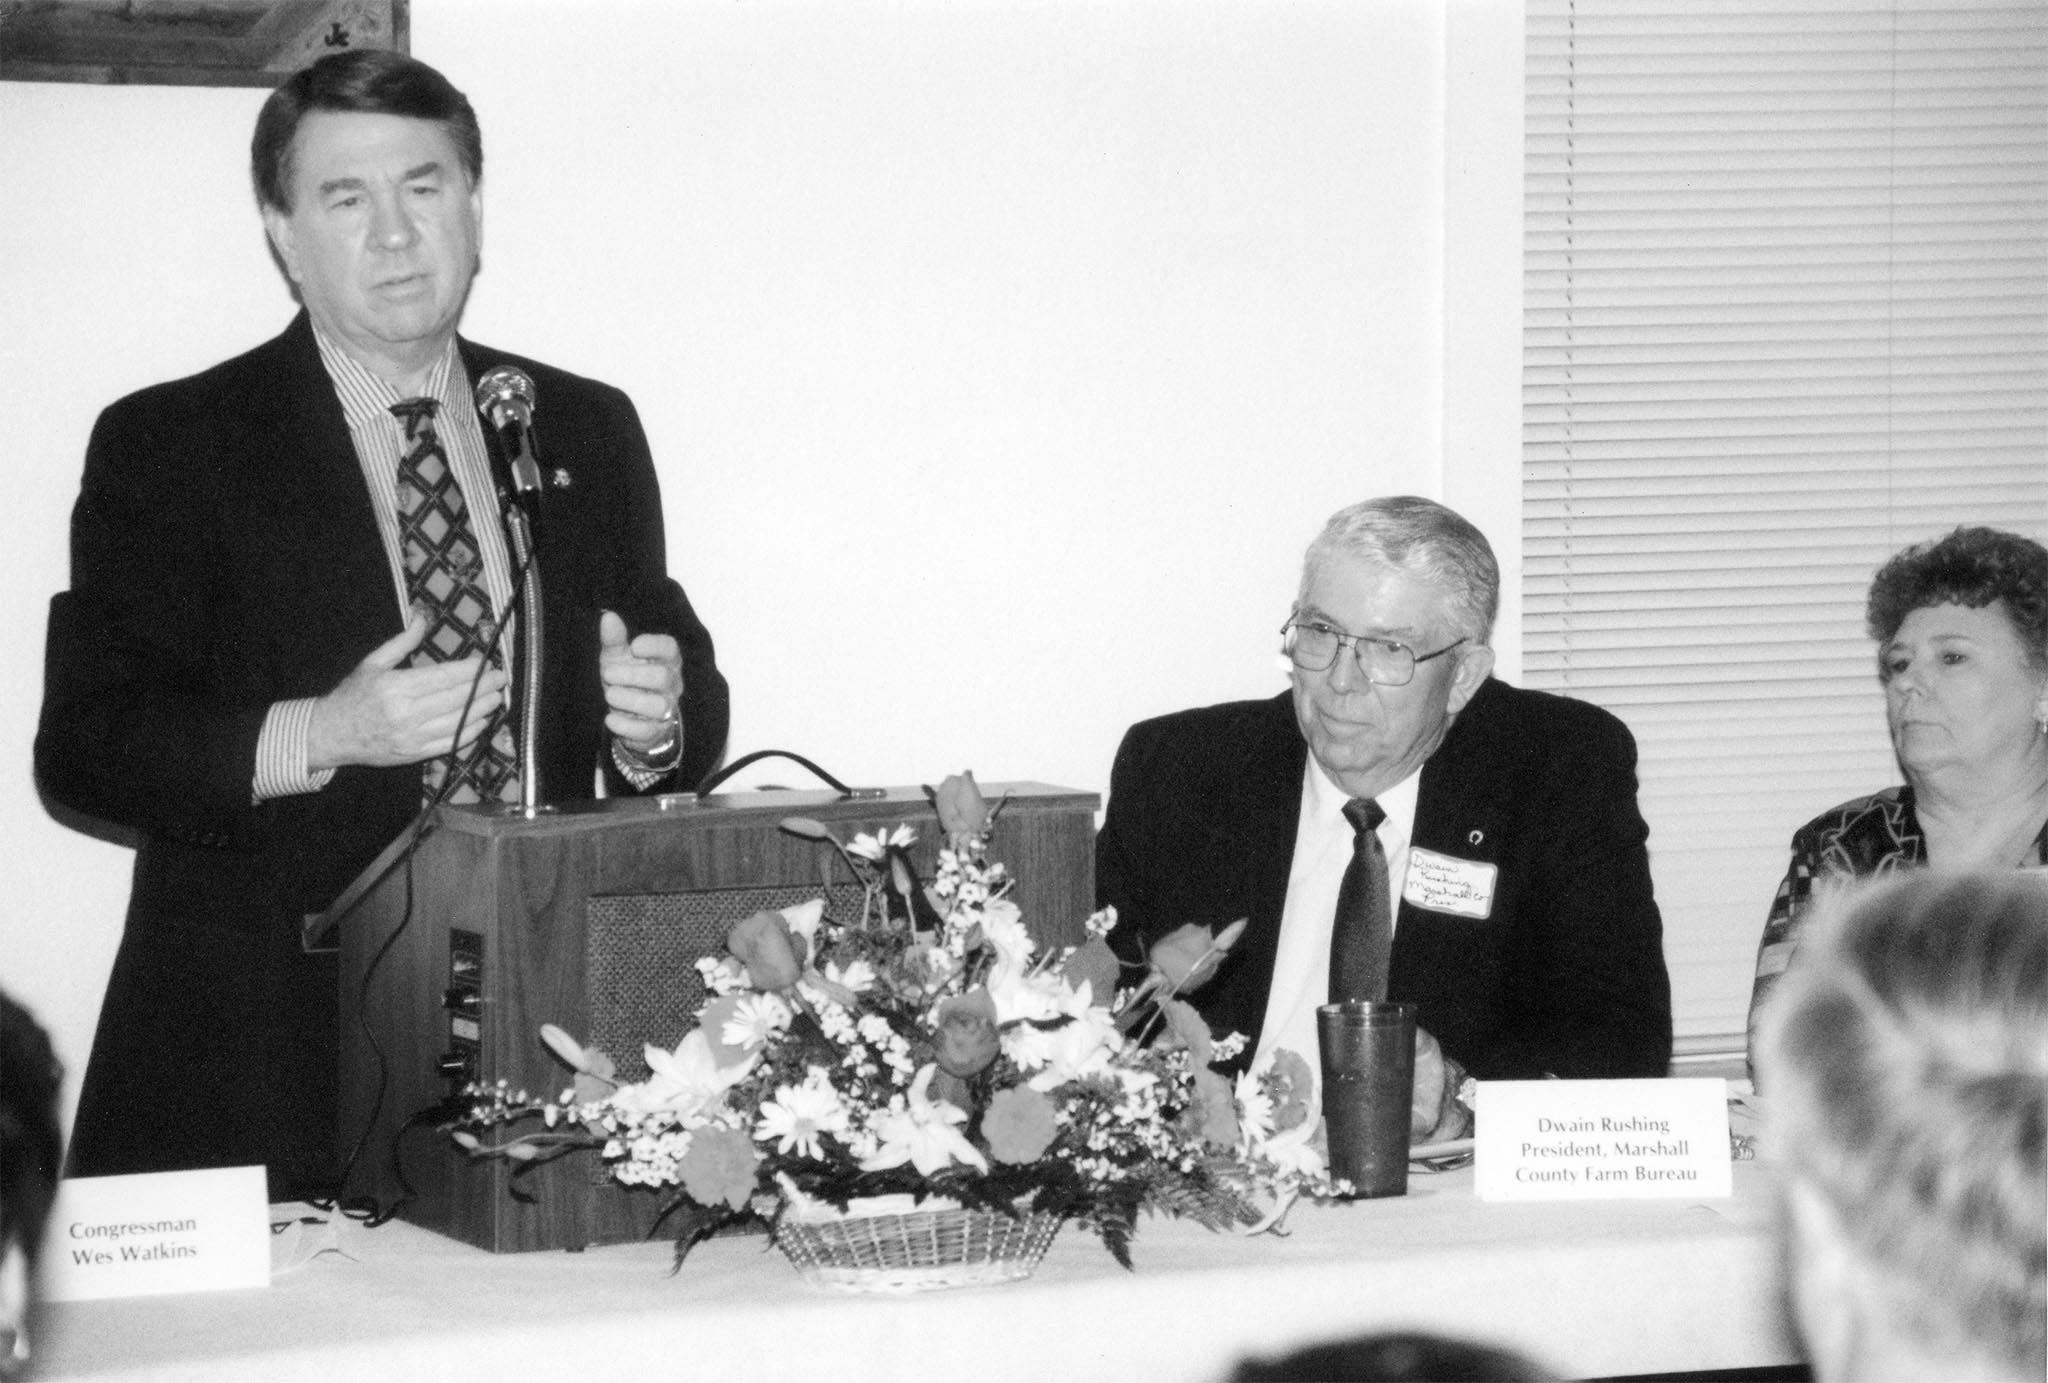 Almost 80 Farm Bureau members from five counties in southeastern Oklahoma assembled in Madill on April 6, 1998, to host U.S. Rep. Wes Watkins. It was the first time for Marshall County Farm Bureau to host a special legislative meeting featuring the third-district U.S. congressman. Marshall County Farm Bureau President Dwain Rushing listened as Rep. Watkins briefed leaders on some of the upcoming issues that would face Congress.